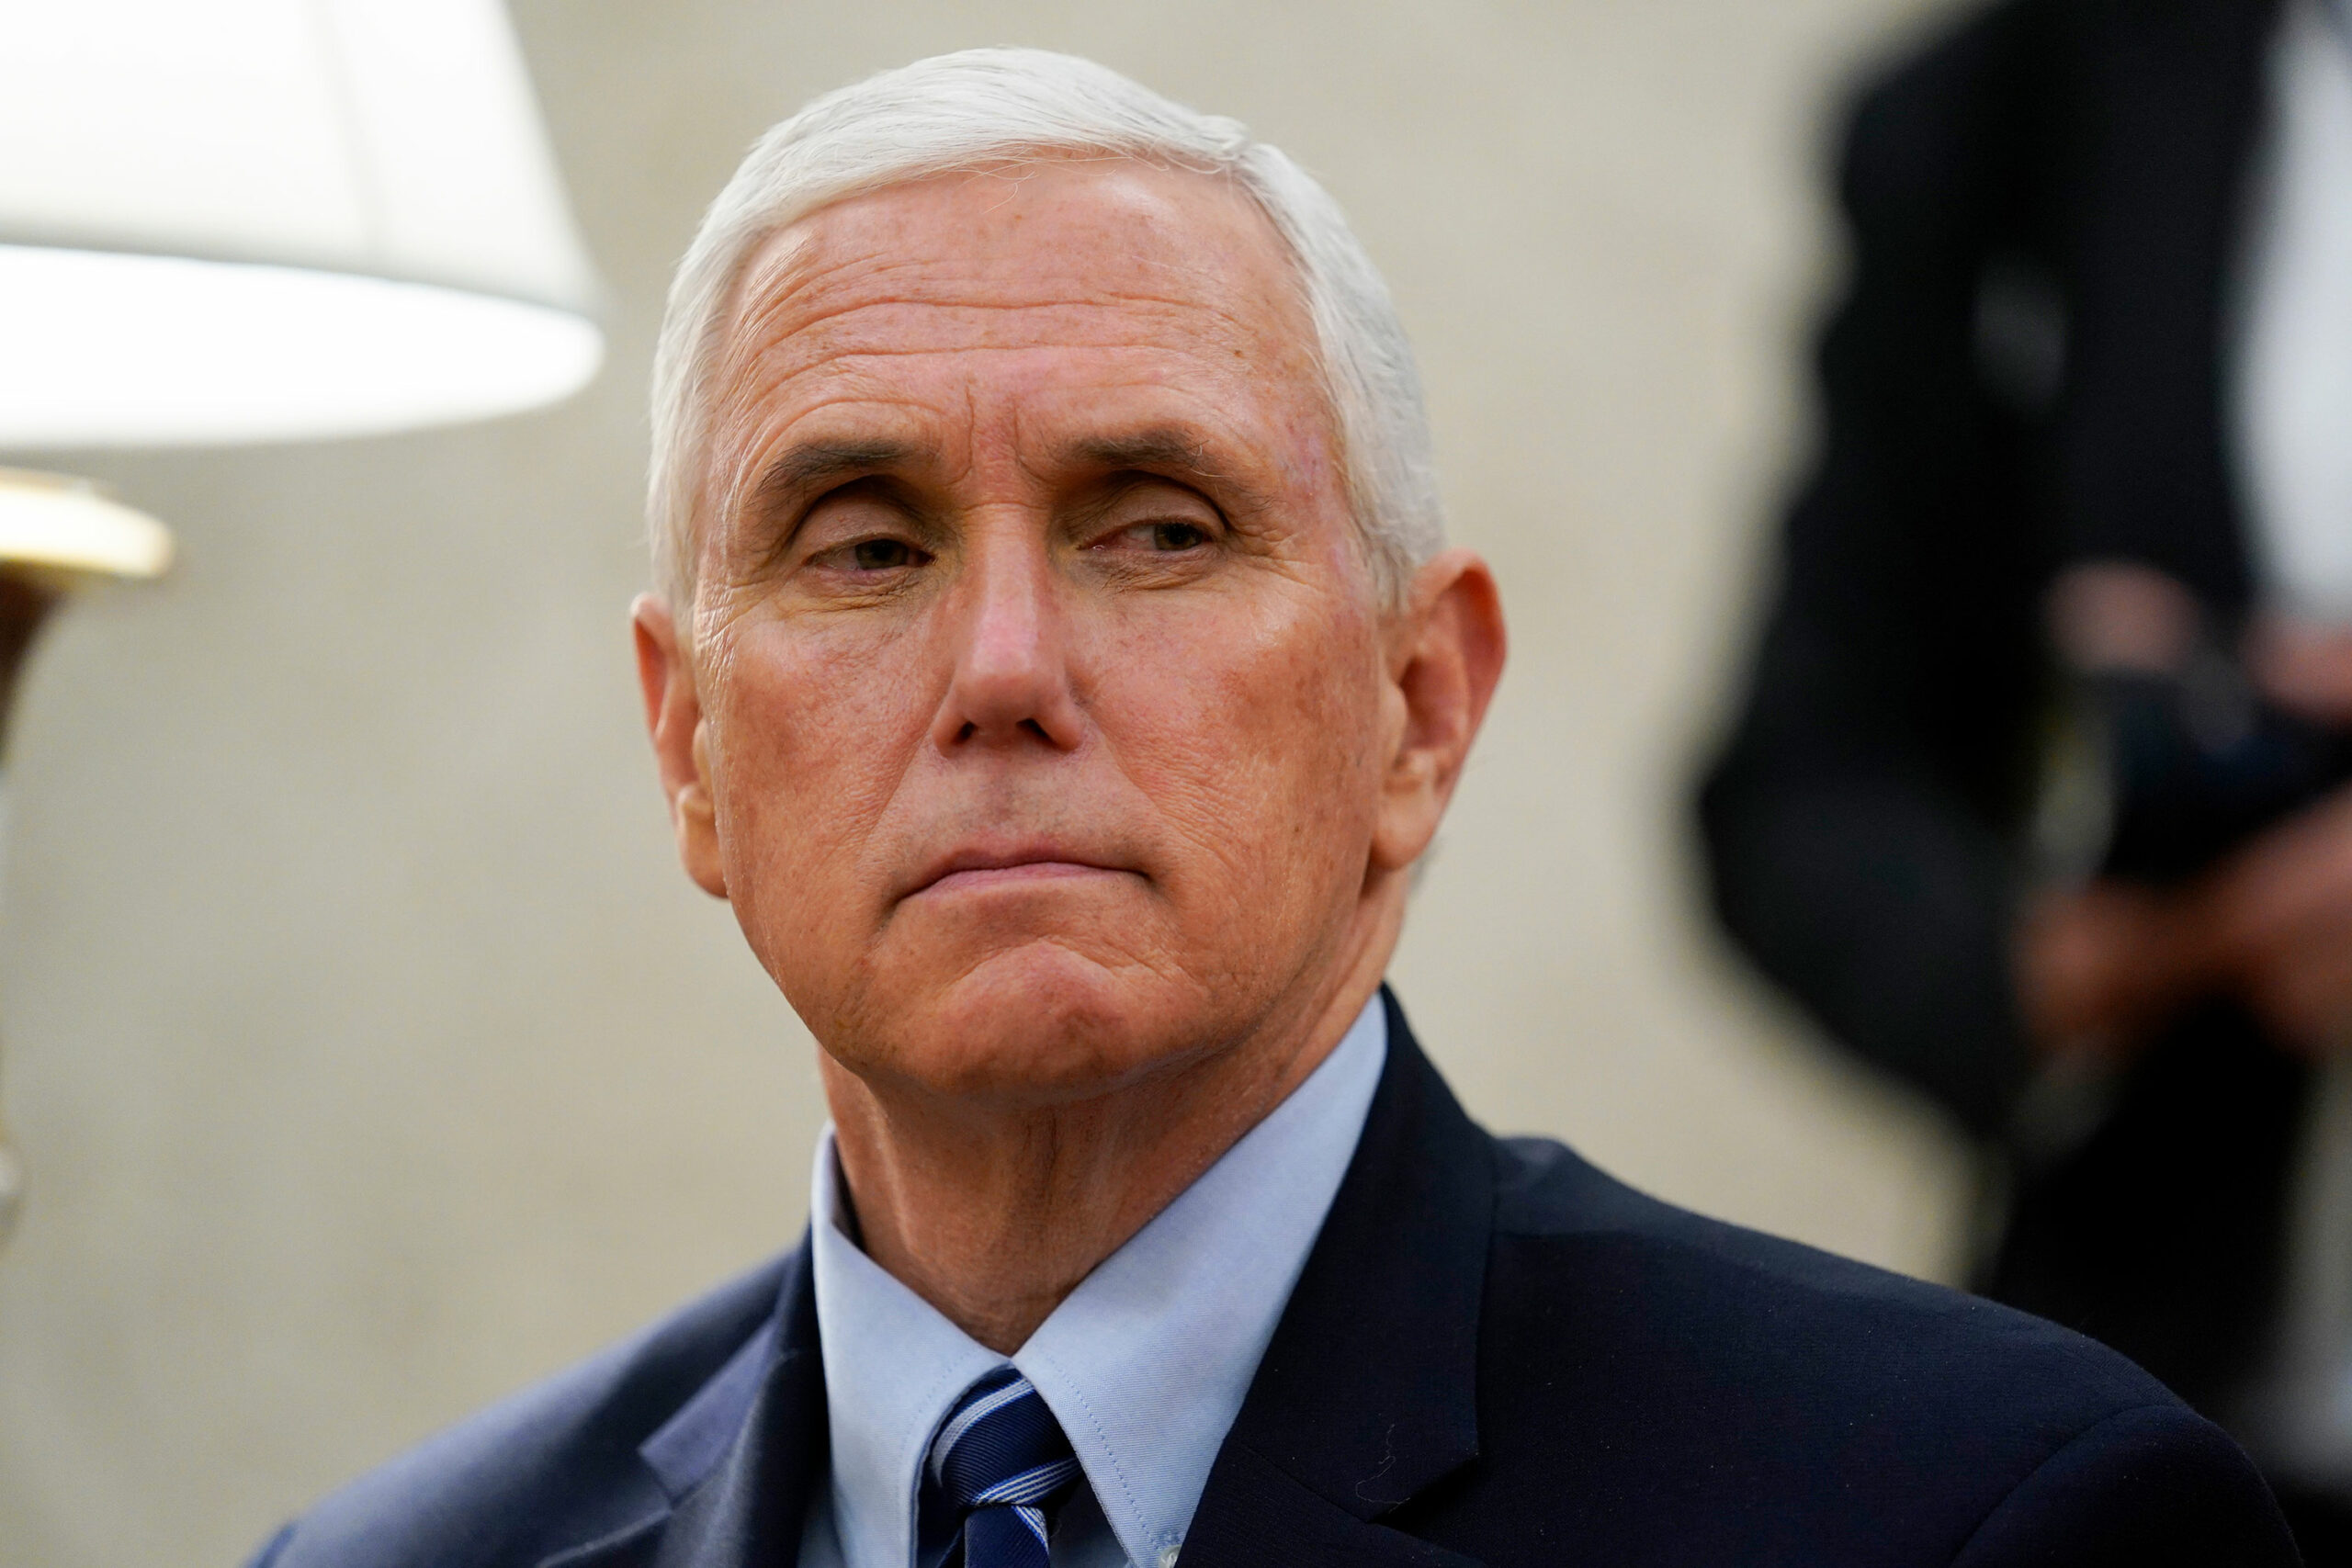 Vice President Pence S Staff Member Tests Positive For Coronavirus